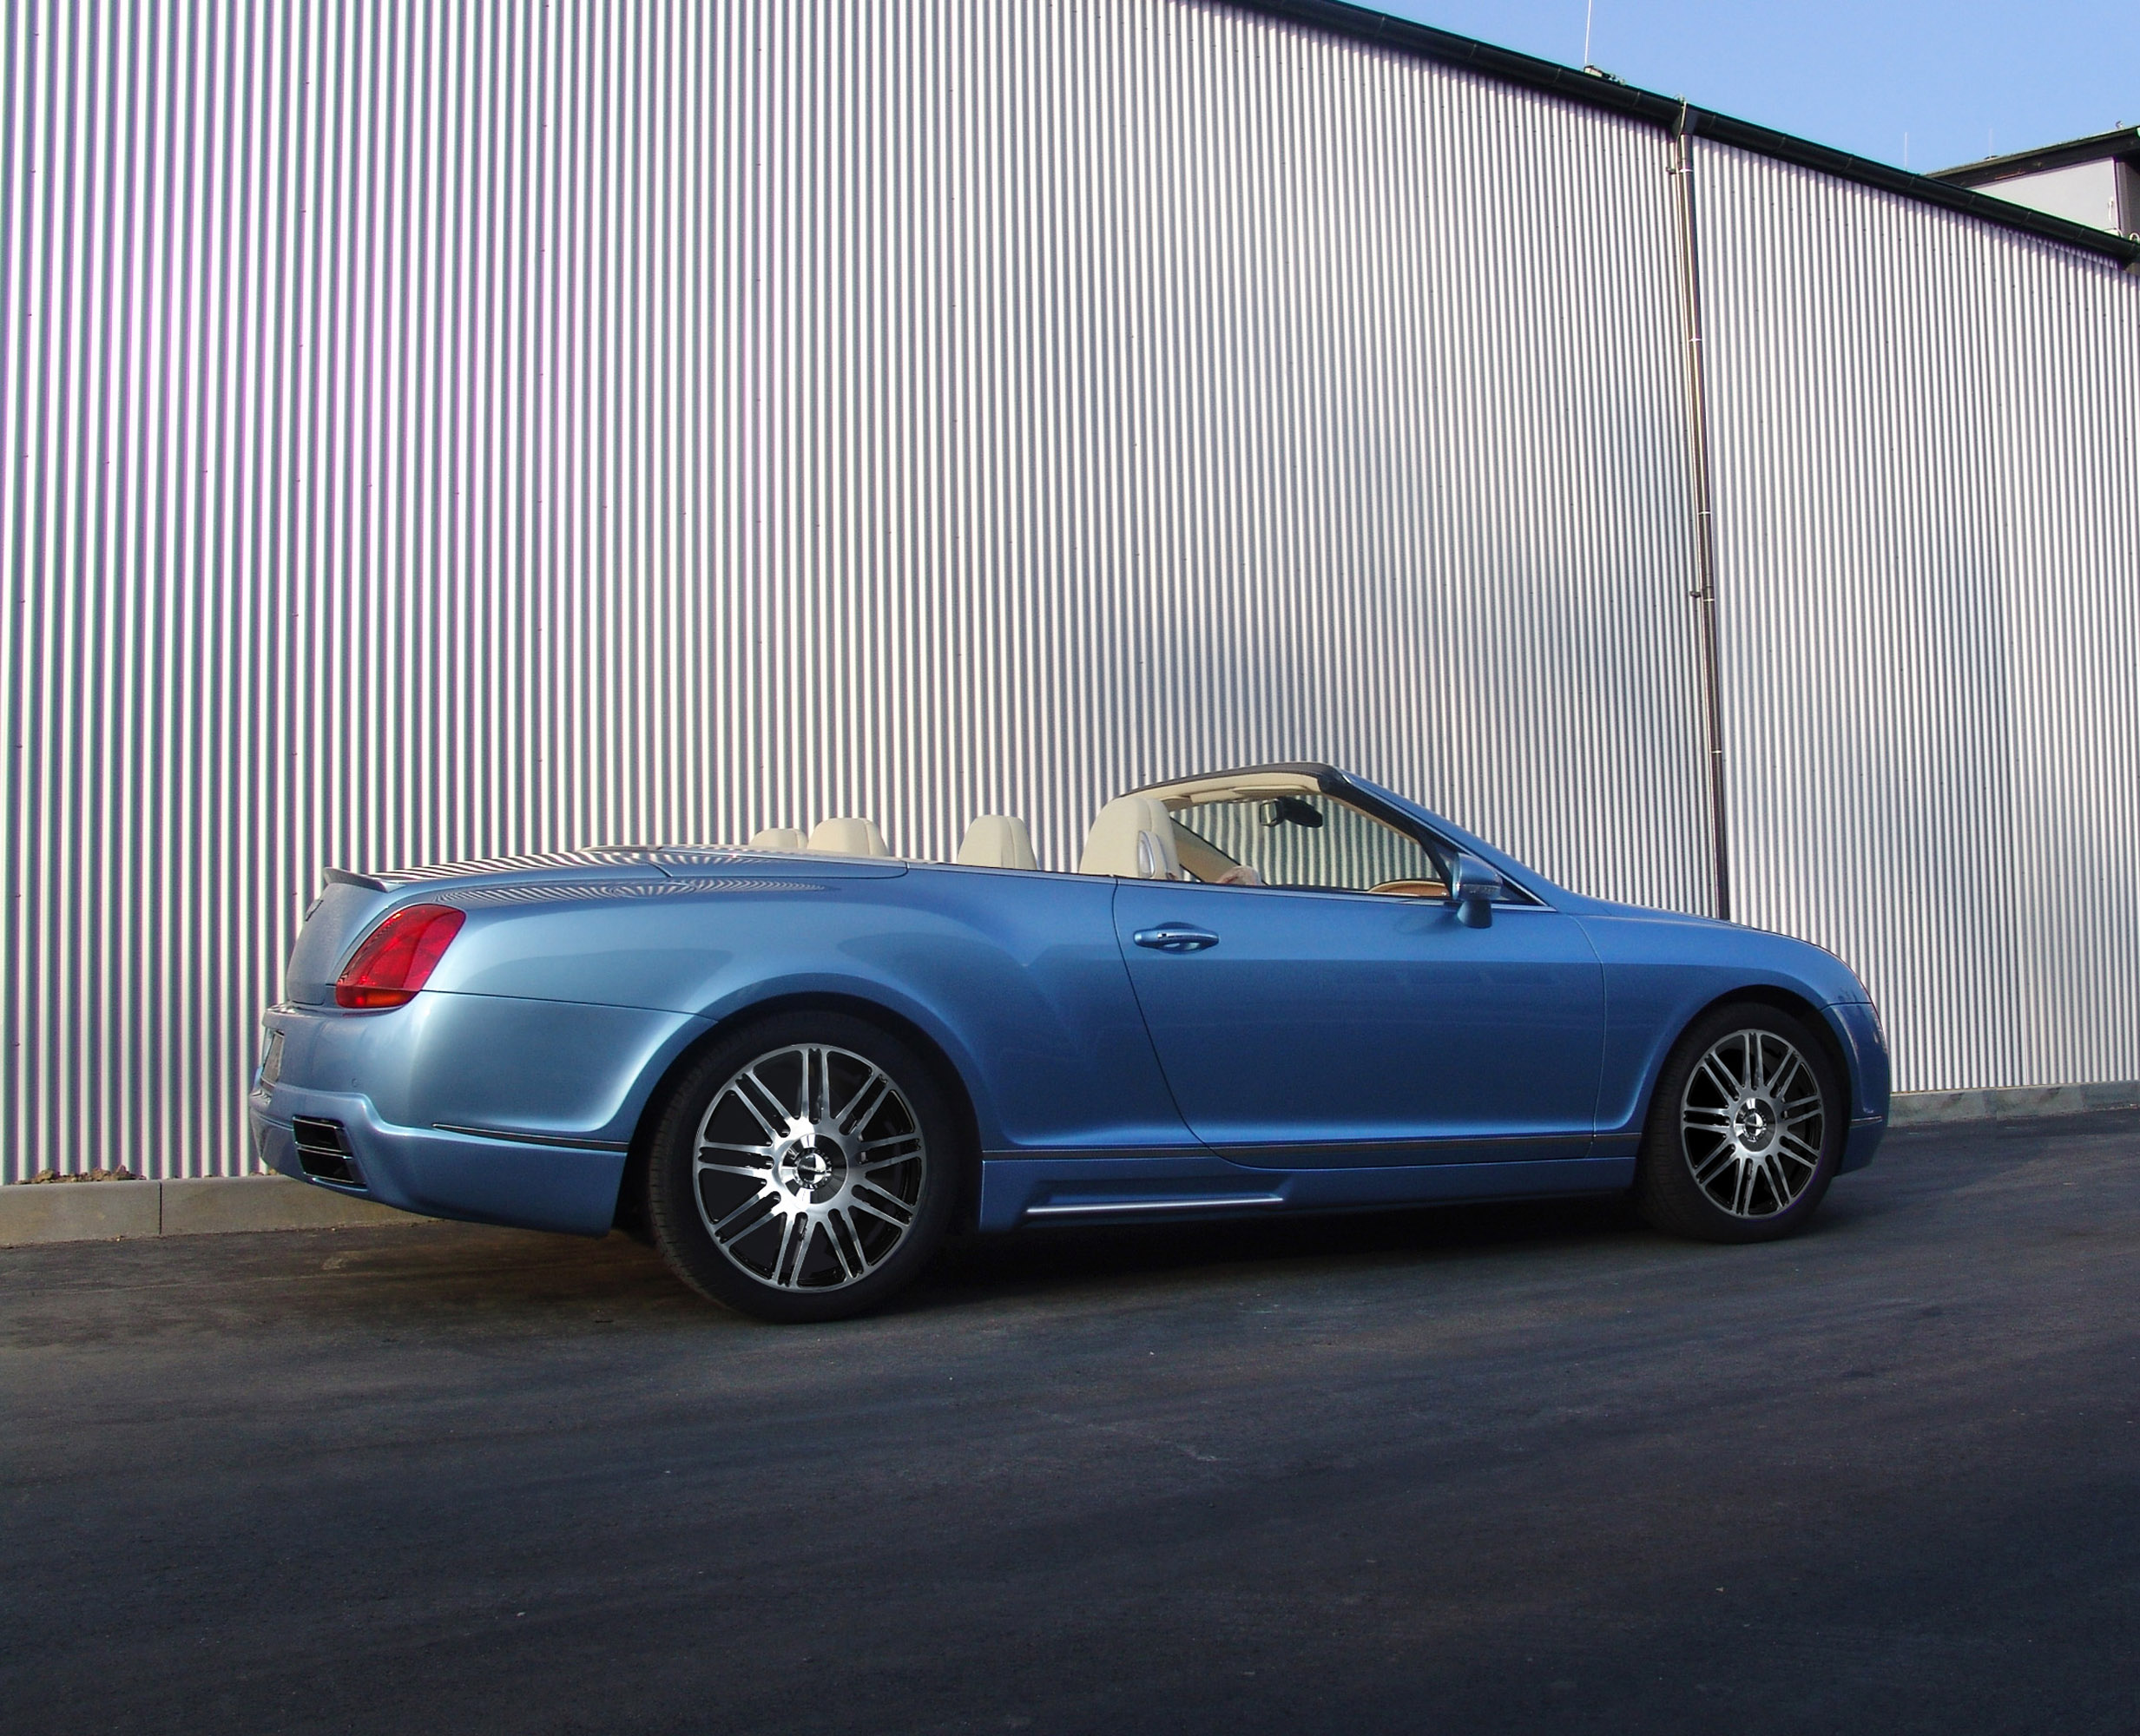 2008 mansory bentley continental gt hd pictures carsinvasion 2008 mansory bentley continental gt thumbnail photo 19584 vanachro Gallery